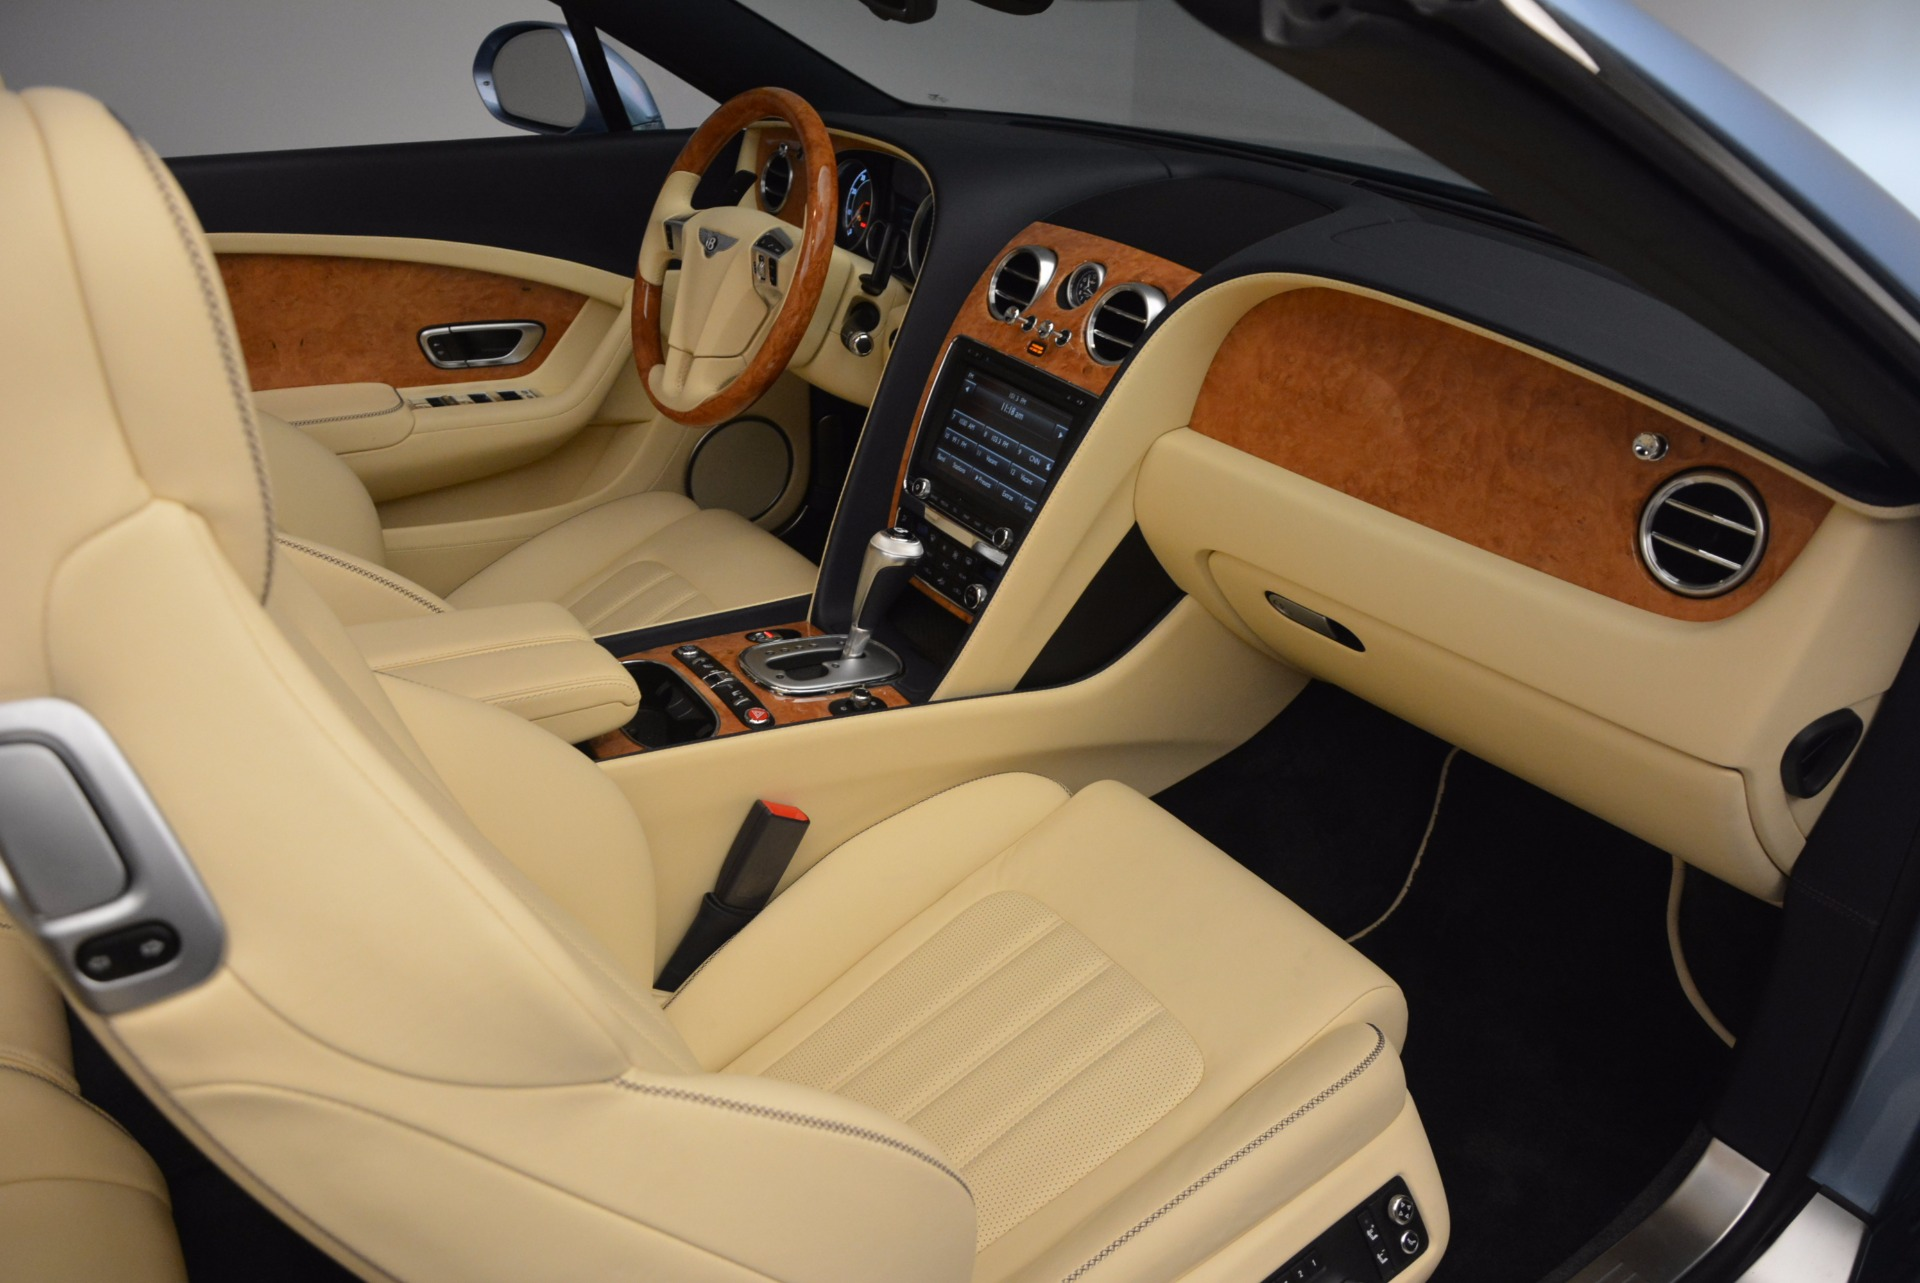 Used 2012 Bentley Continental GTC W12 For Sale In Westport, CT 1475_p43